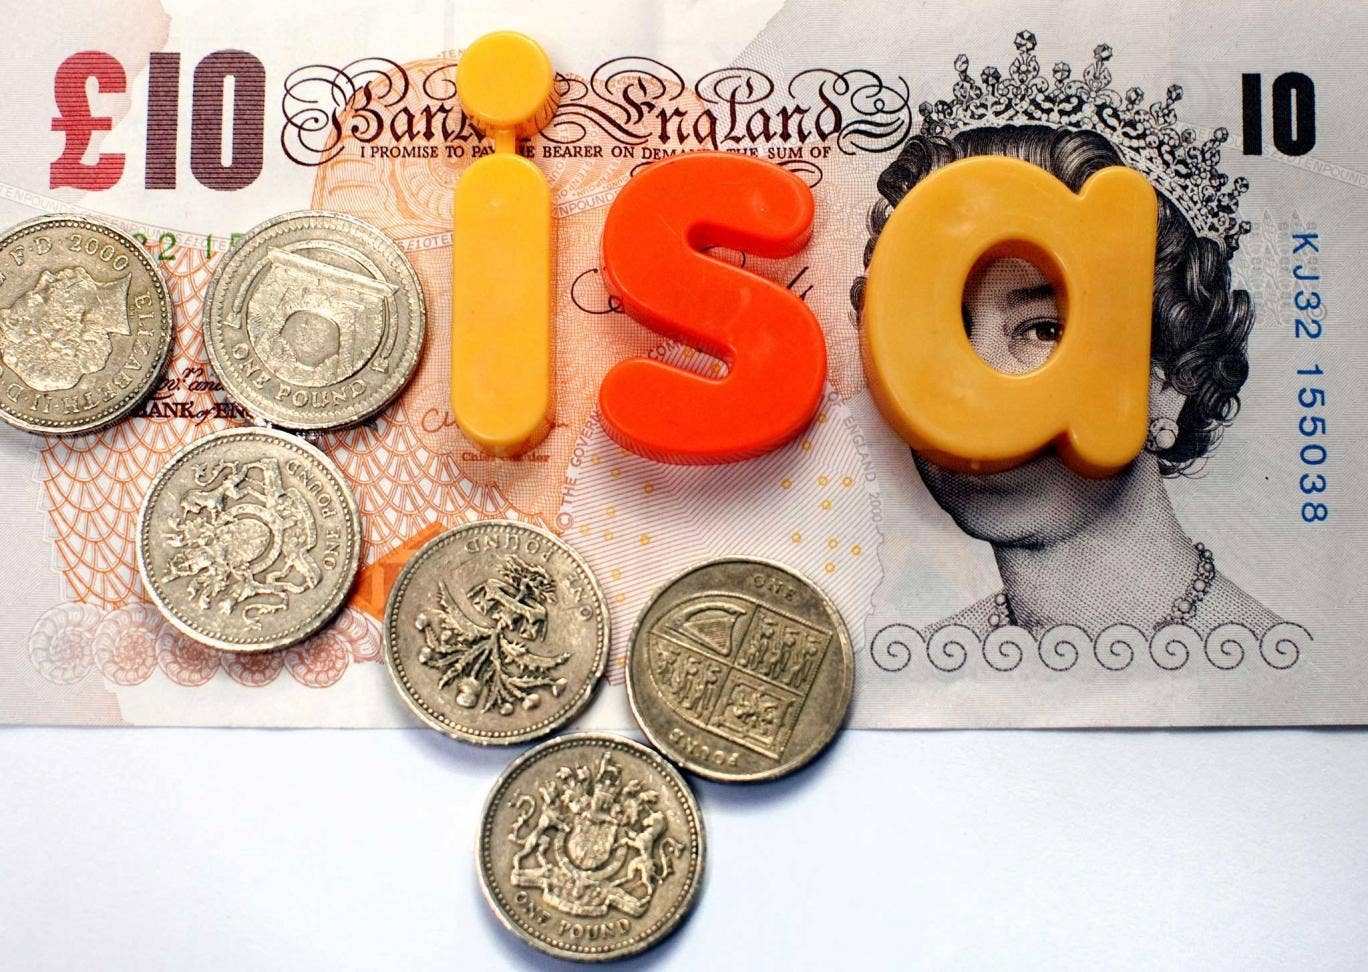 New Isas have become much more flexible